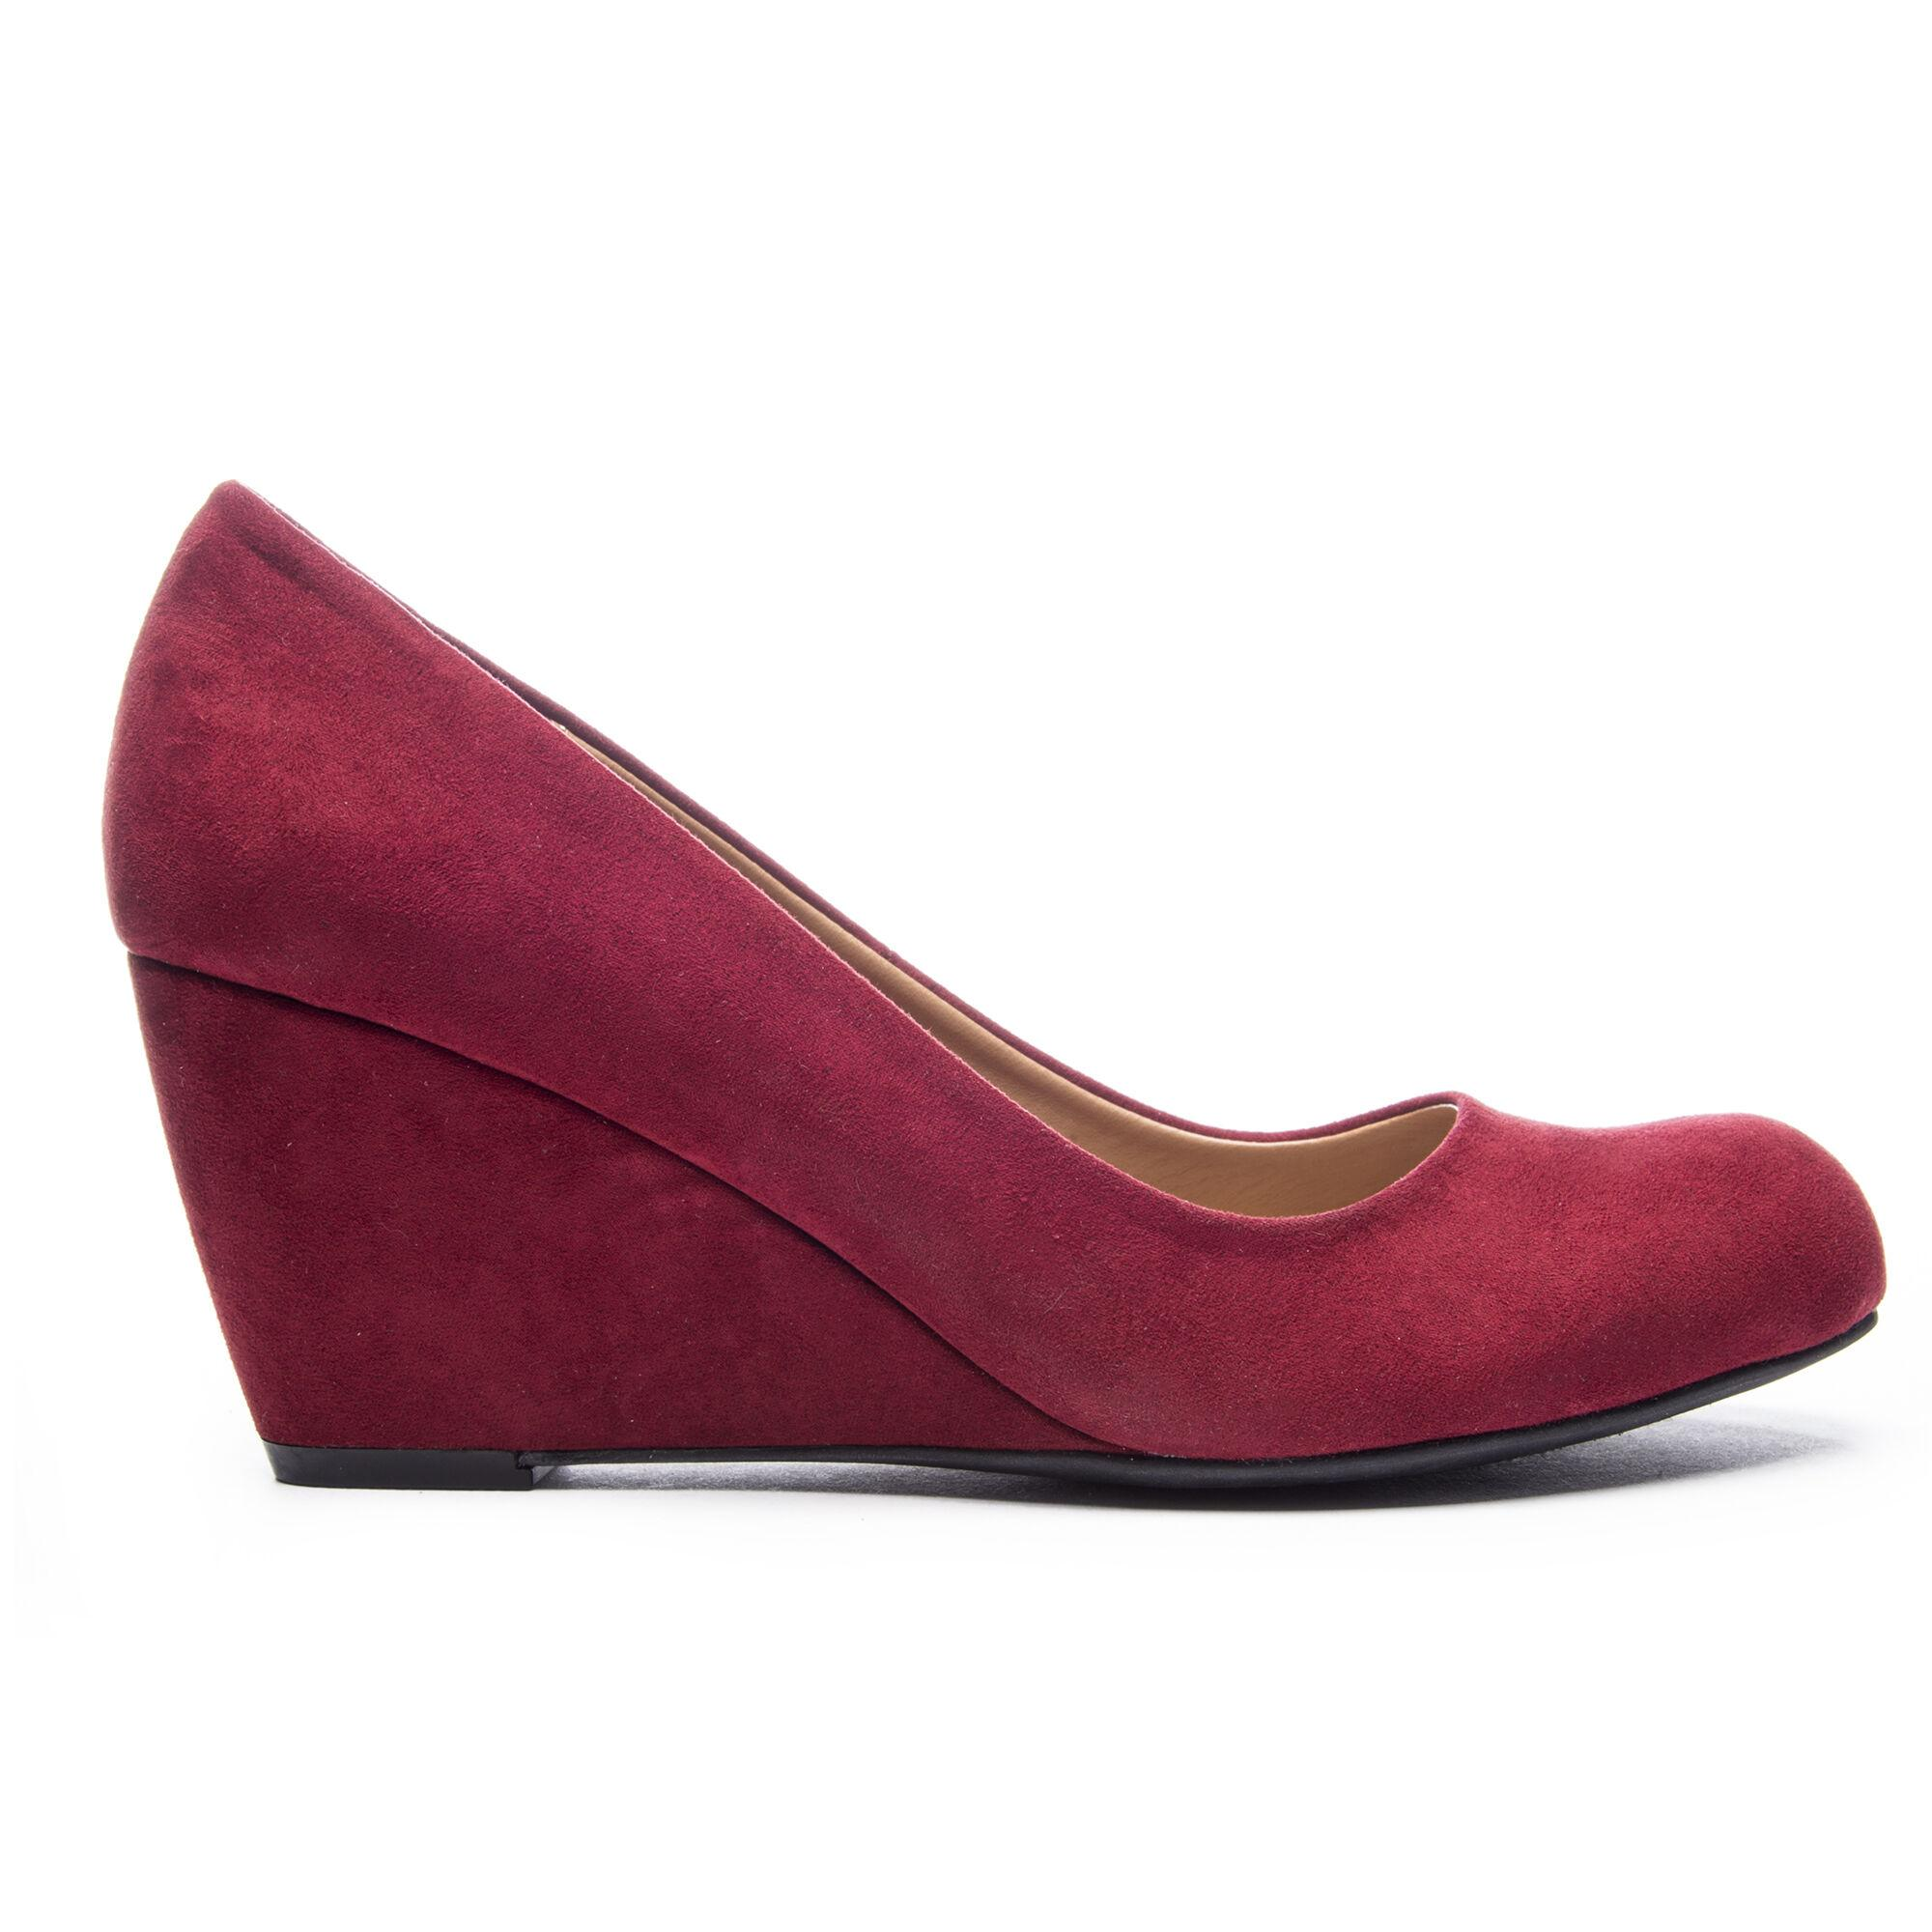 CL by Chinese Laundry Nima Wedge size 7.5 | Womens shoes